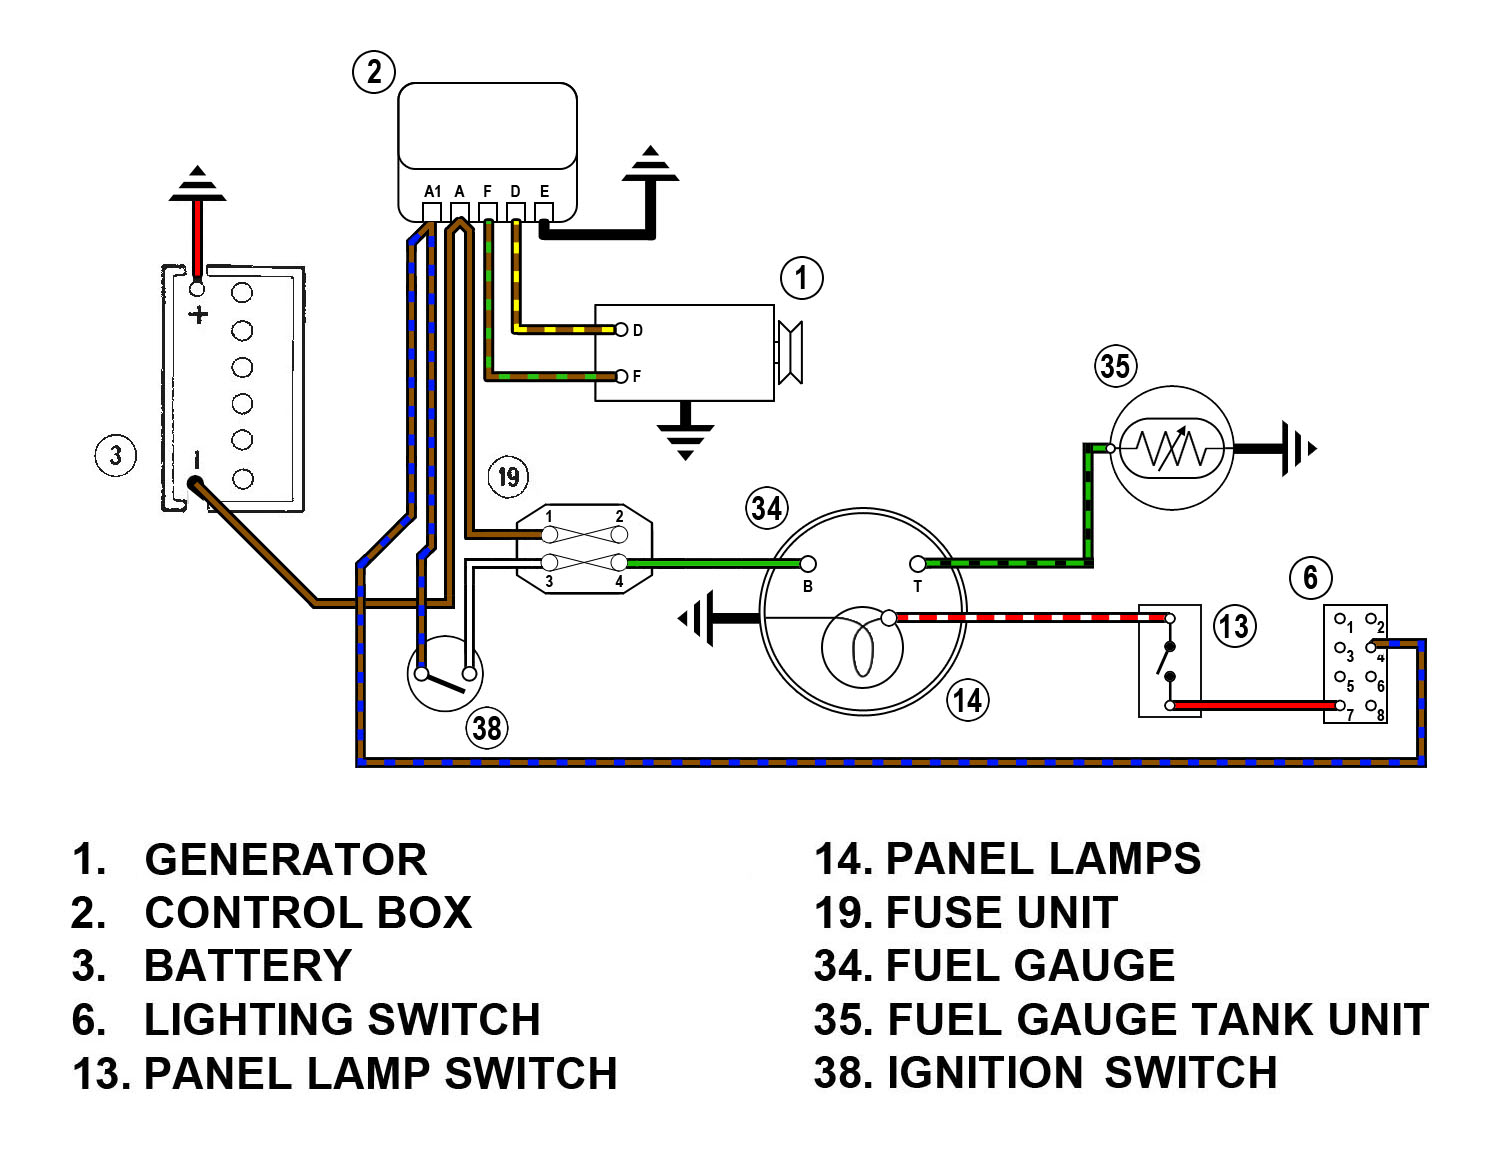 spridgetguru com tech index fuel gauge wiring diagram rh spridgetguru com 1987 ford f150 fuel gauge wiring diagram 1978 ford f150 fuel gauge wiring diagram